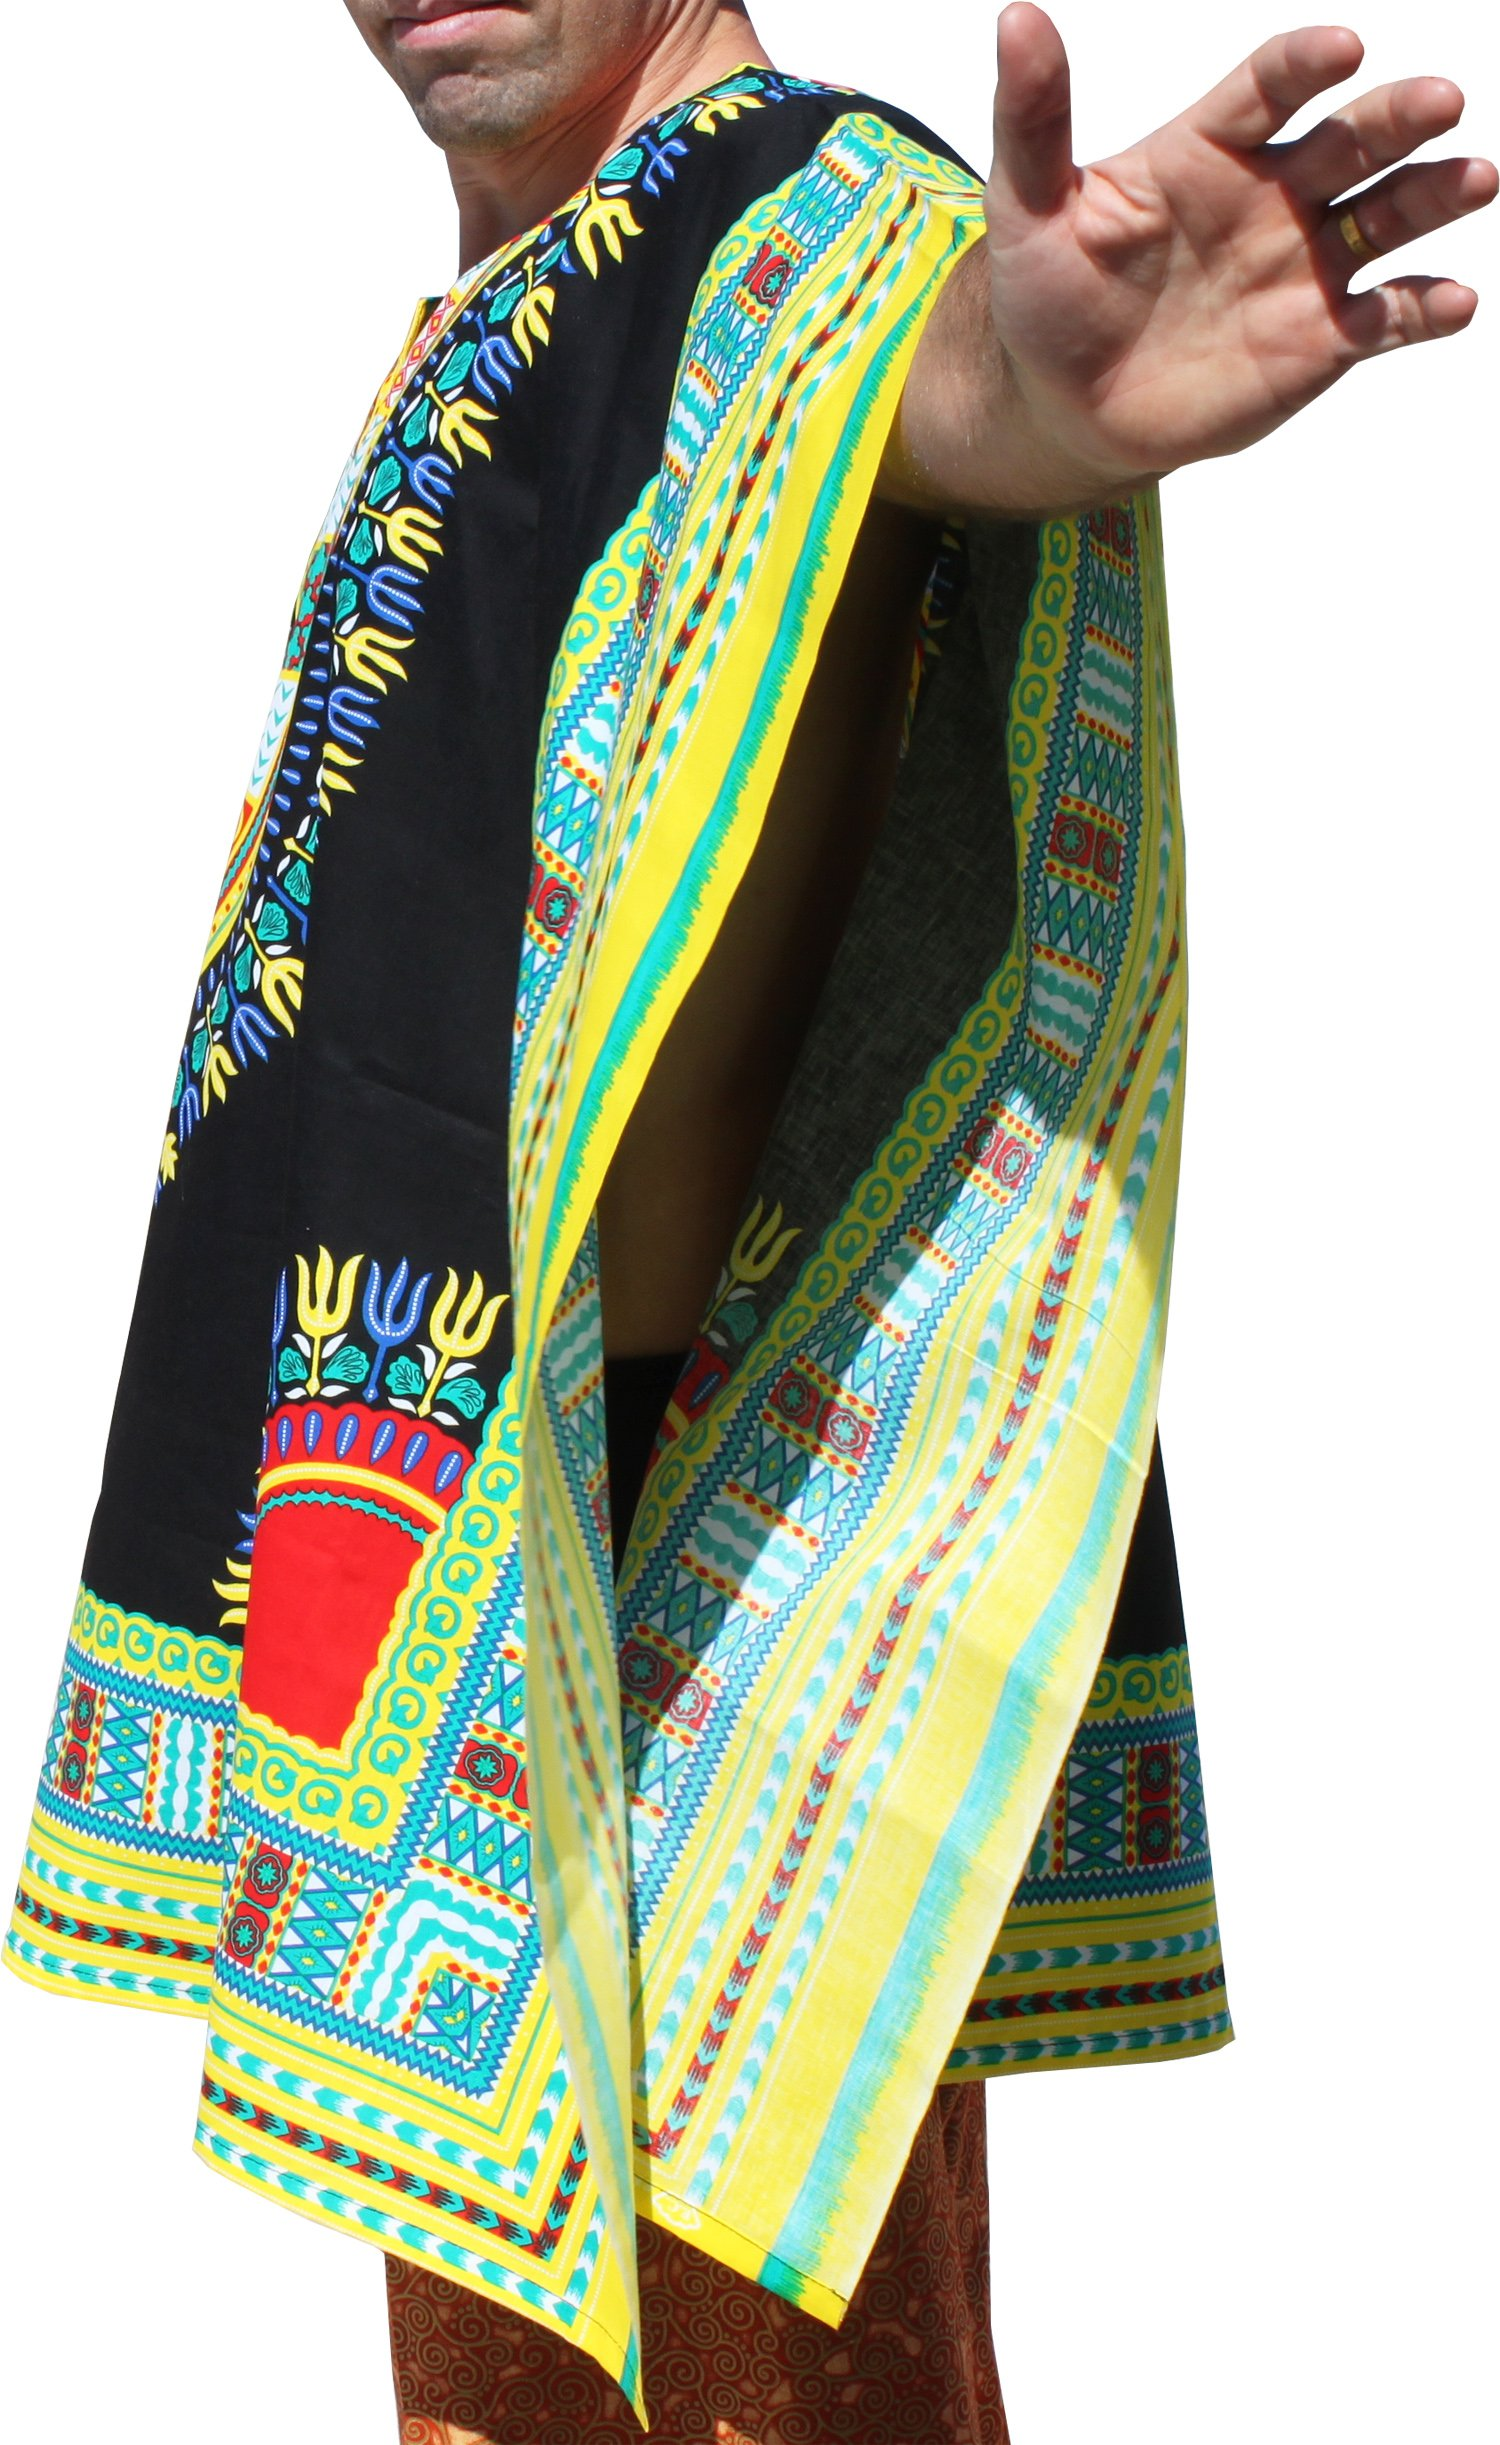 RaanPahMuang Brand Throw Over Poncho Top (Fully Open Sides) African Dashiki Art, Black With Yellow Multi by RaanPahMuang (Image #1)